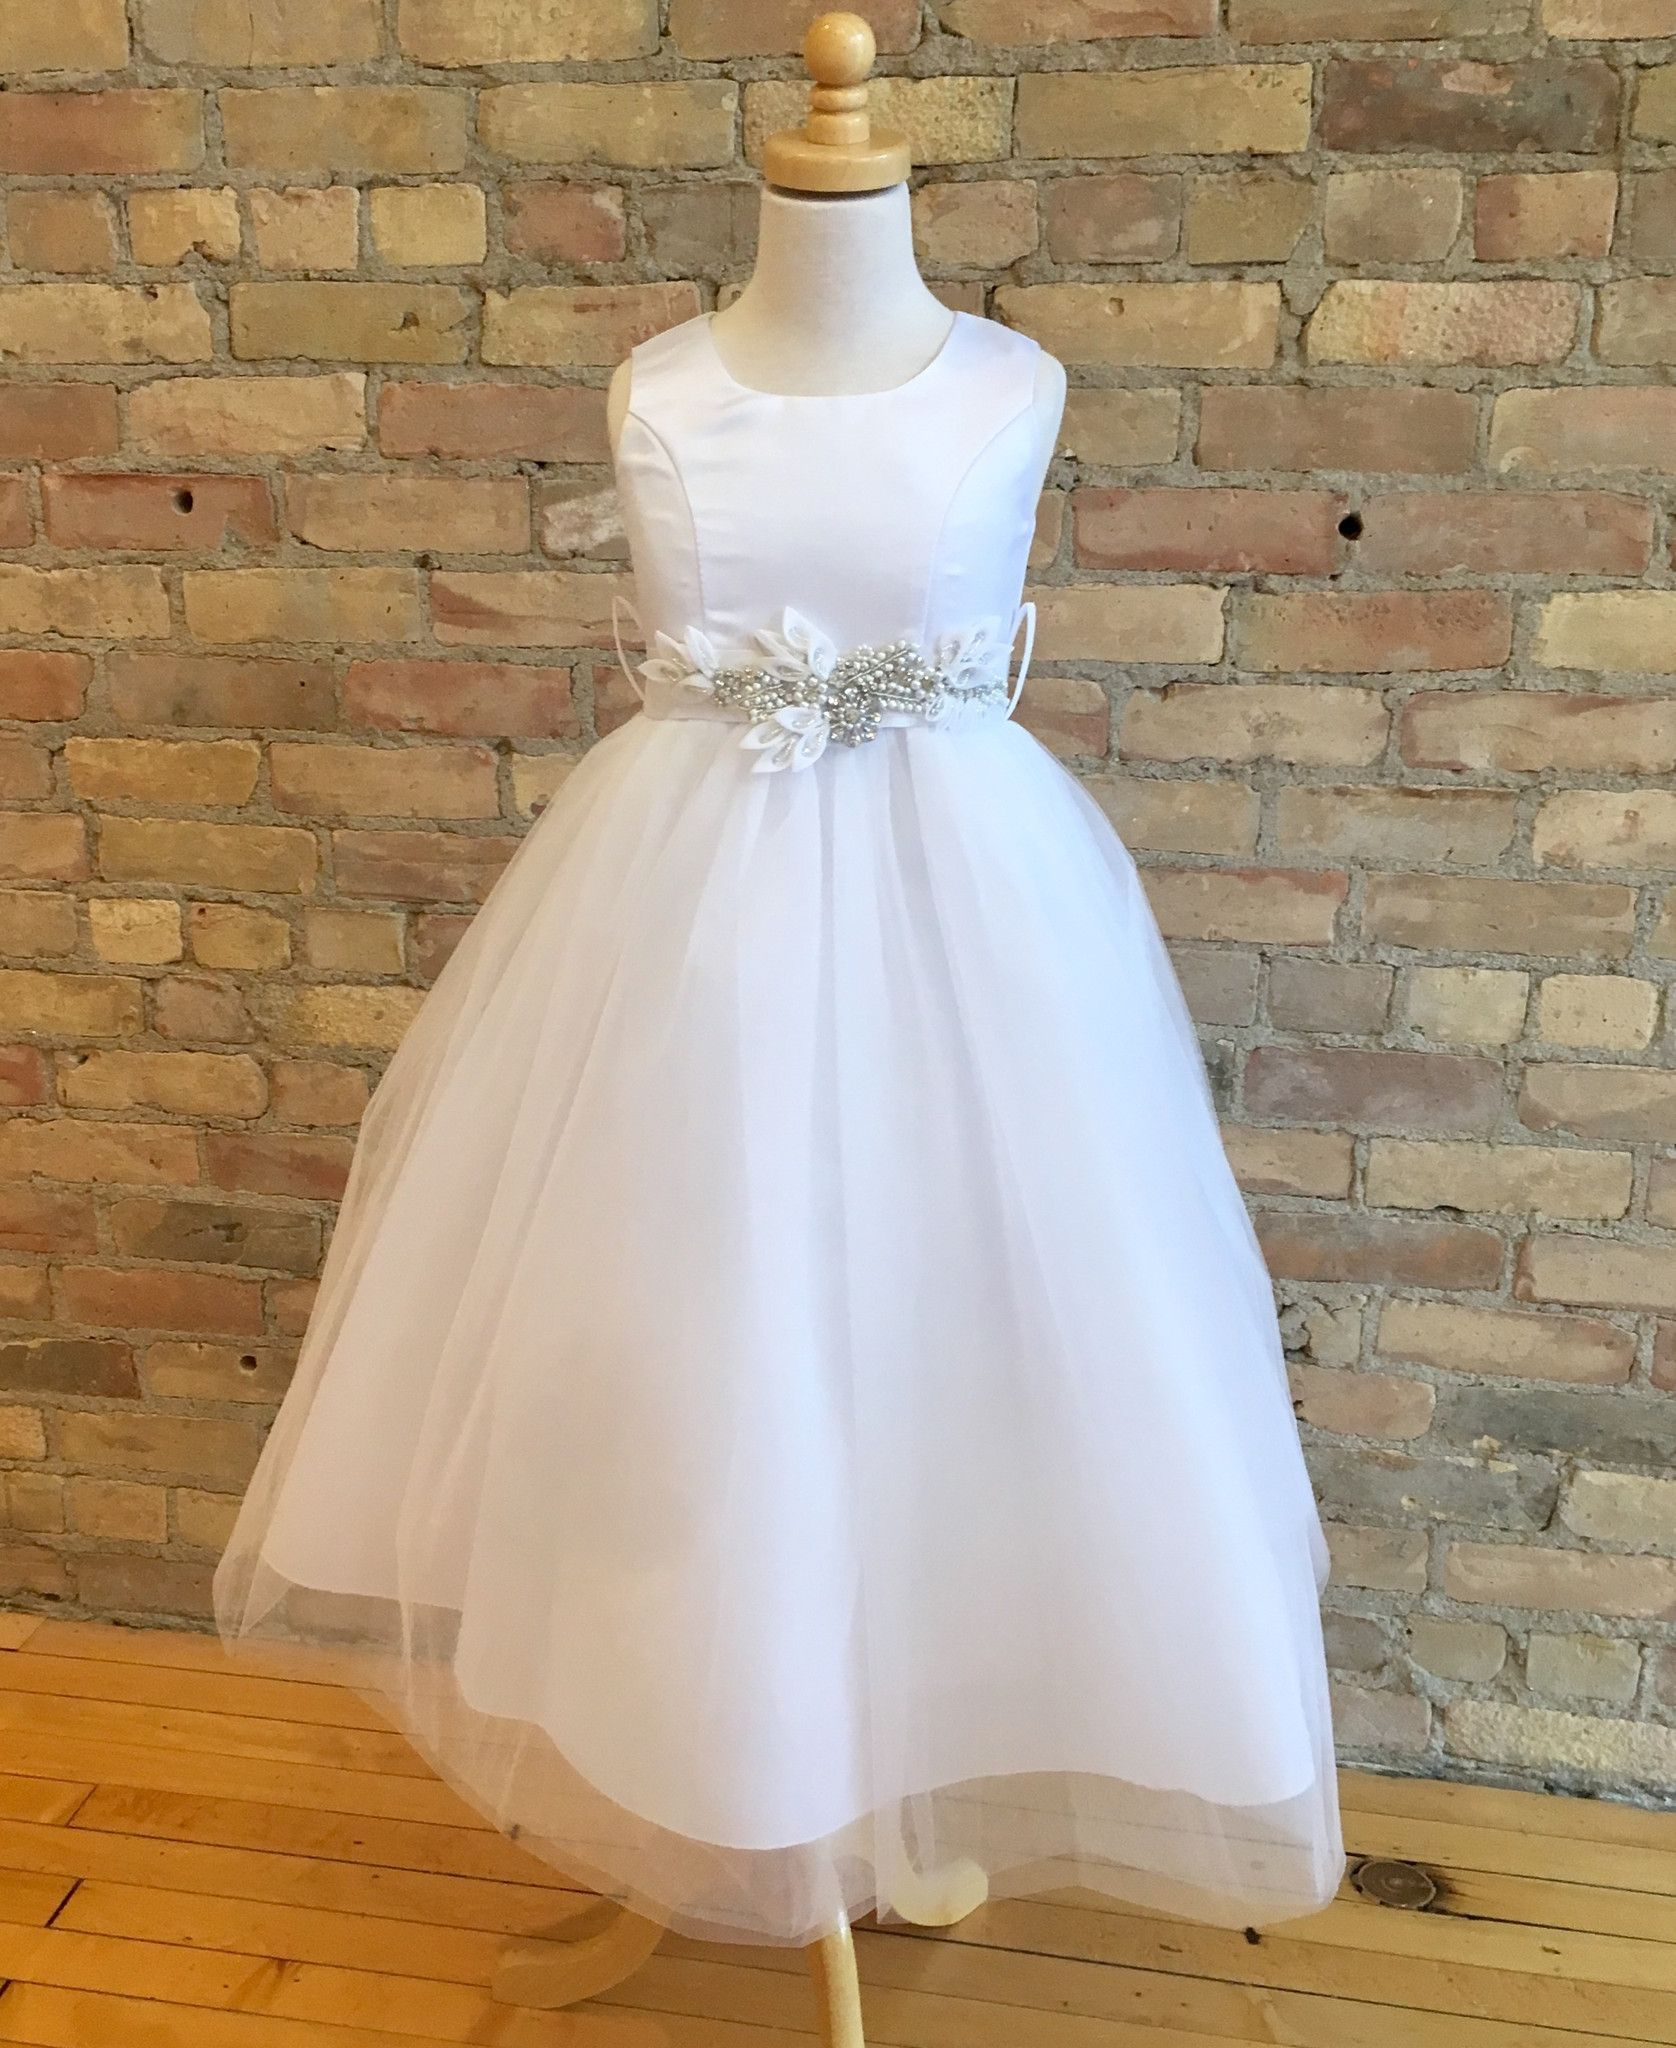 Wedding dresses with rhinestones  Girls Bead and Rhinestone Floral Belt Dress  Products  Pinterest